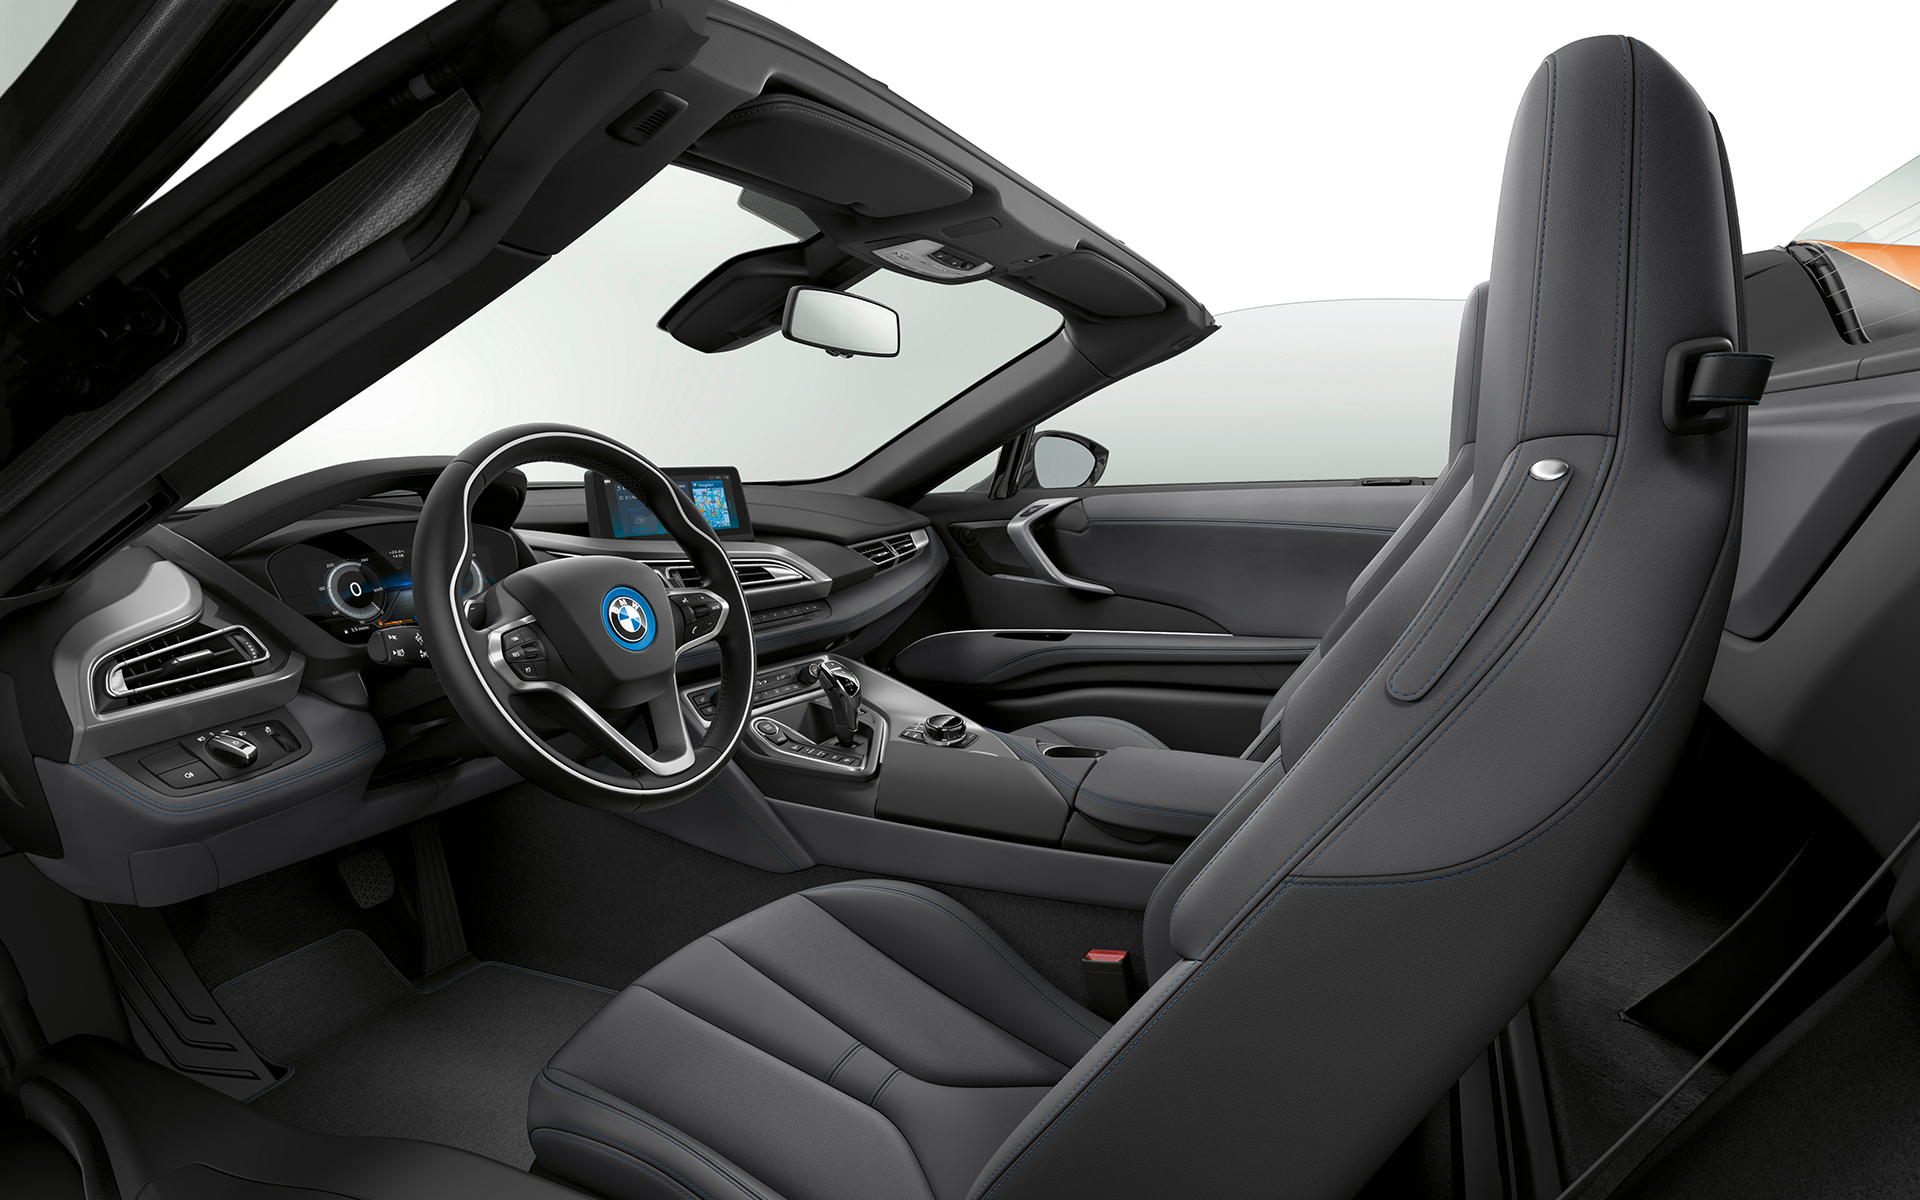 bmw i8 i8roadster home gallery lines 03 amido black I15